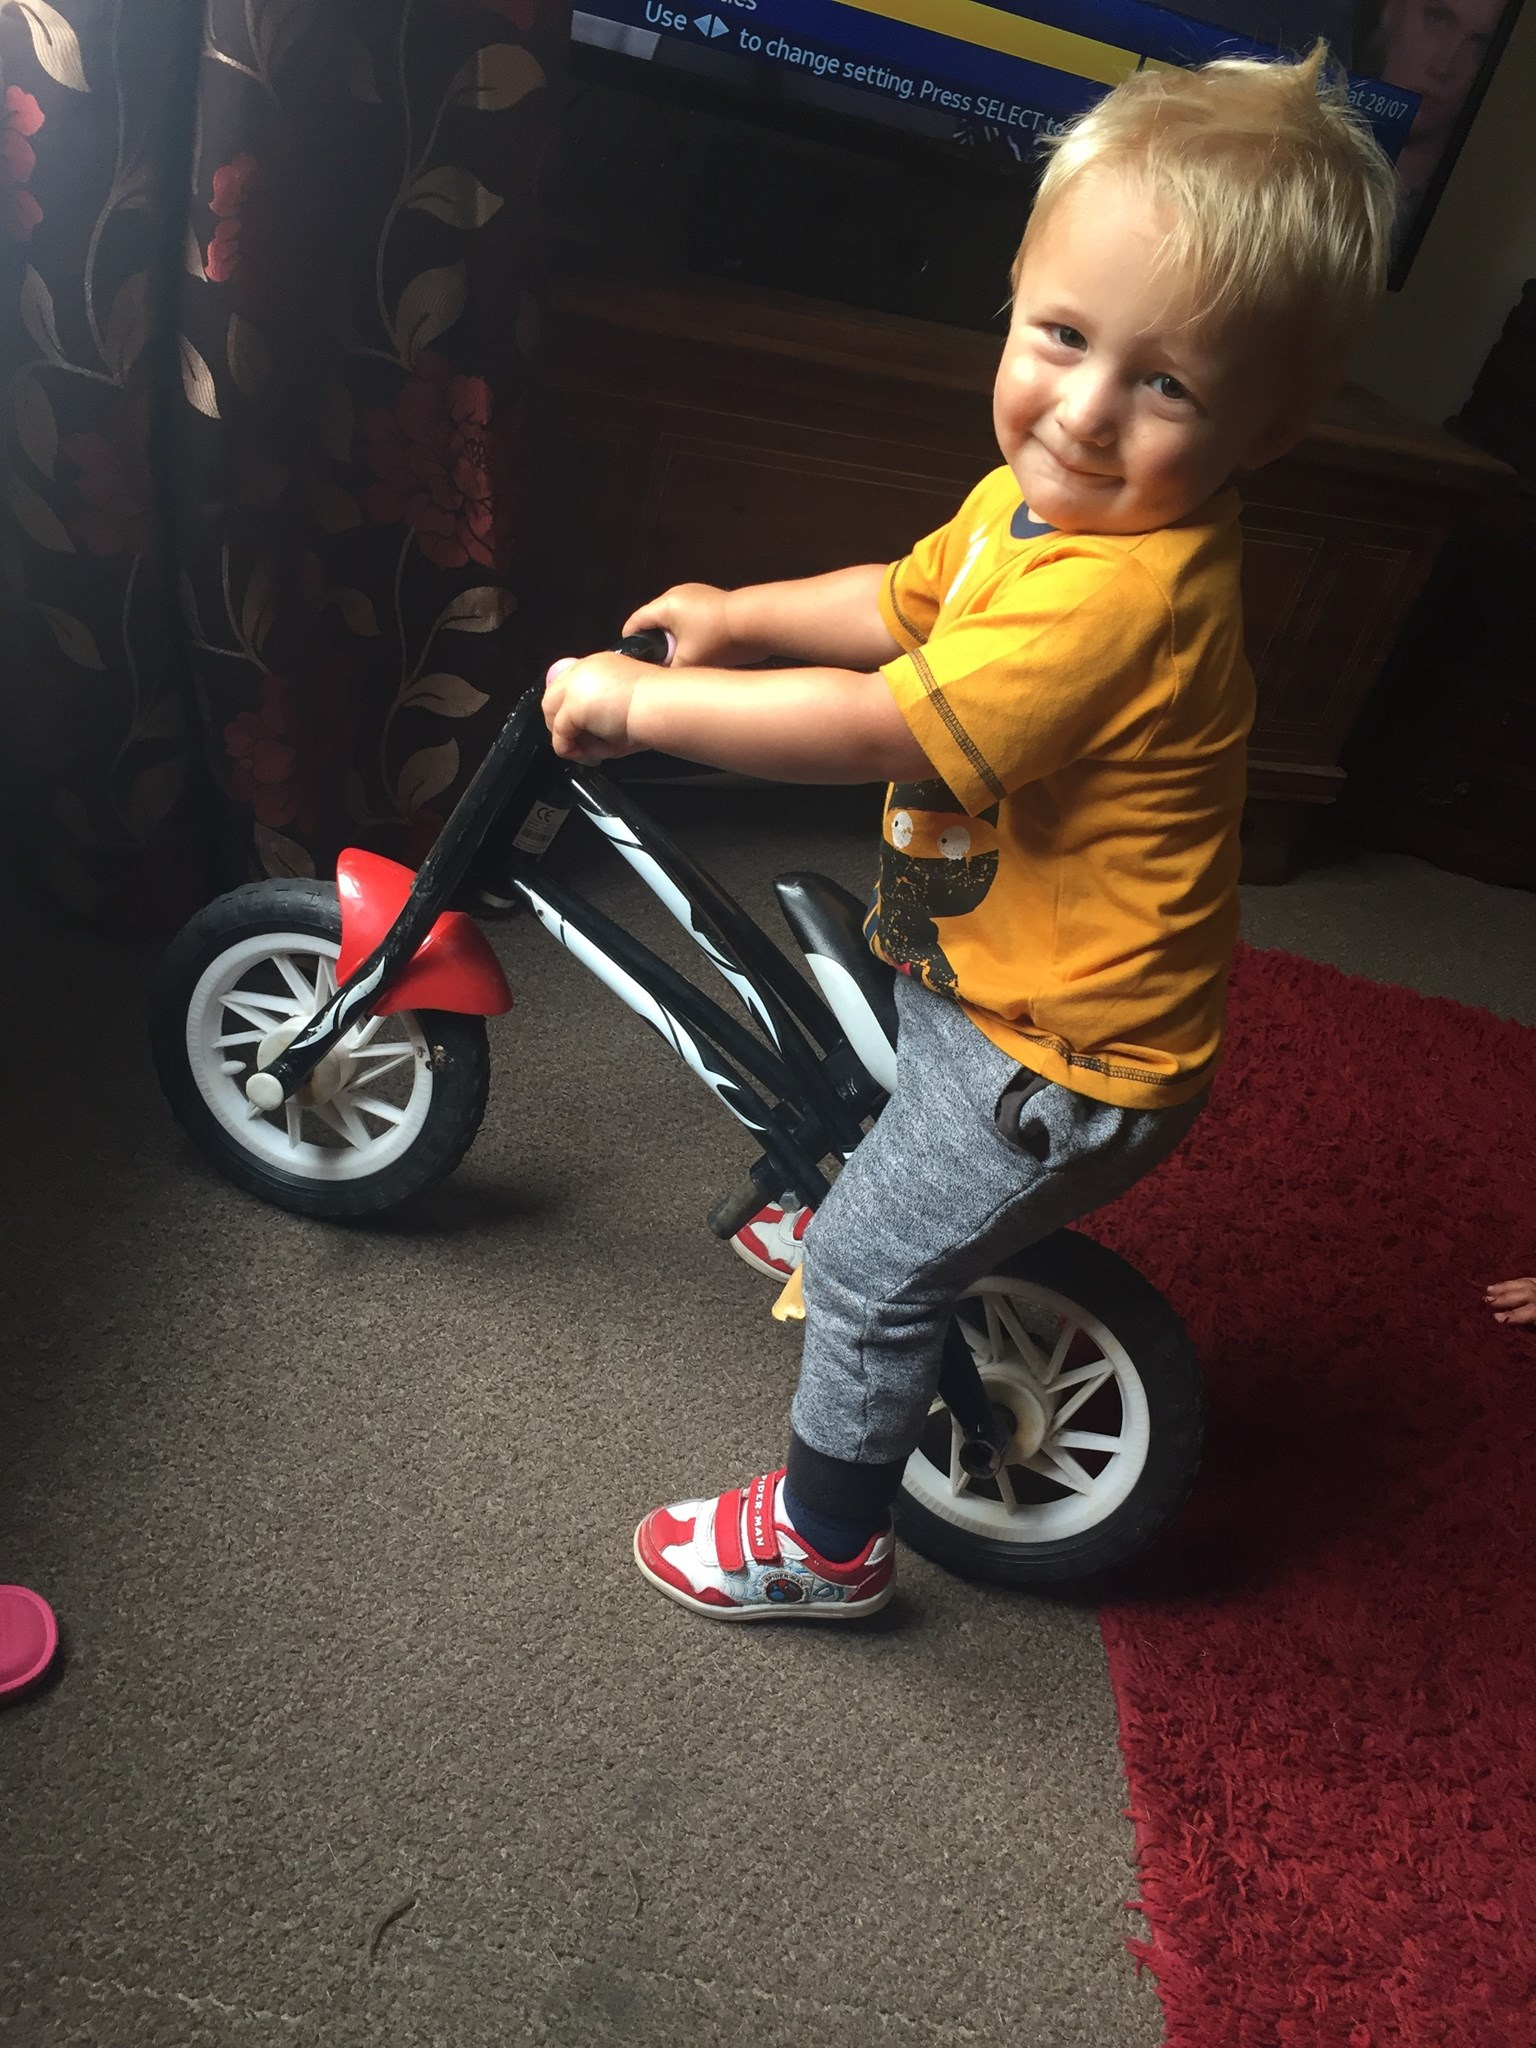 Rory on the bike you got Reann. It's even got PSA sticker on it xxxxx